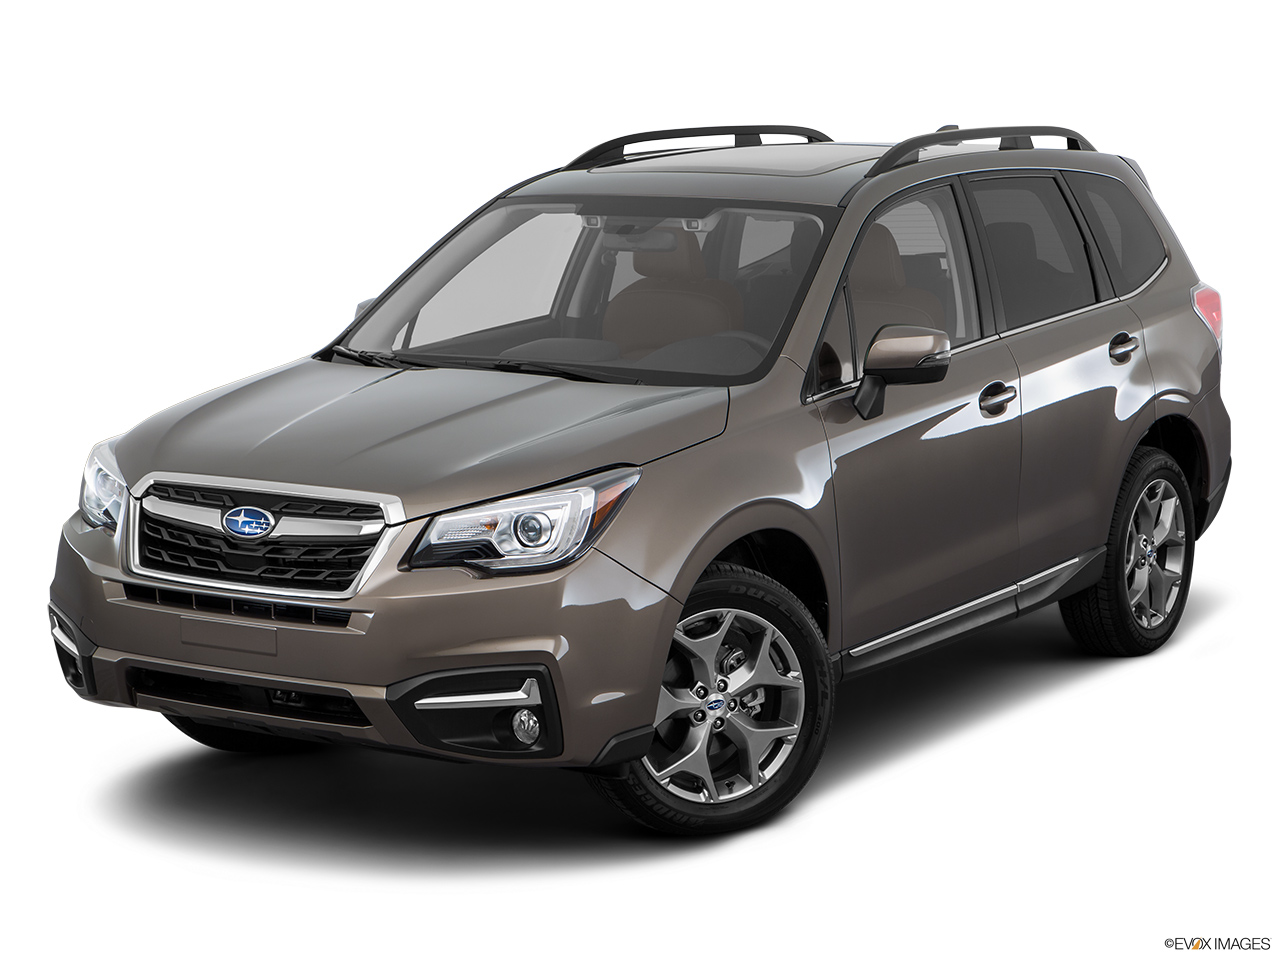 Subaru forester price in bahrain new subaru forester for Subaru forester paint job cost